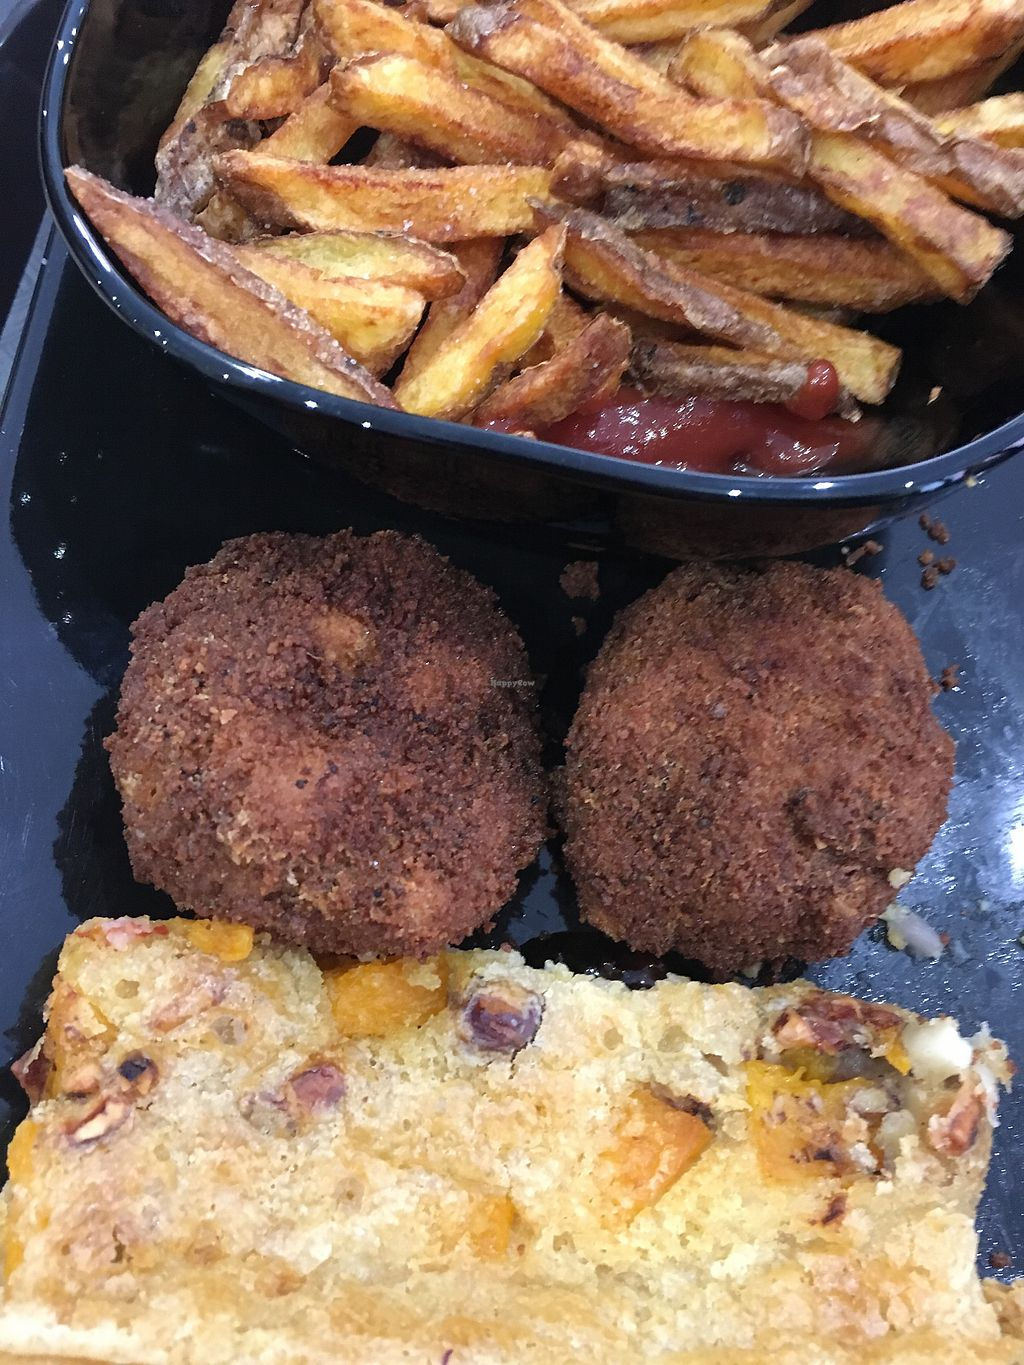 """Photo of Veggie Corner  by <a href=""""/members/profile/xavierfretard"""">xavierfretard</a> <br/>Tofu nuggets and veggie tart  <br/> January 5, 2018  - <a href='/contact/abuse/image/90289/343275'>Report</a>"""